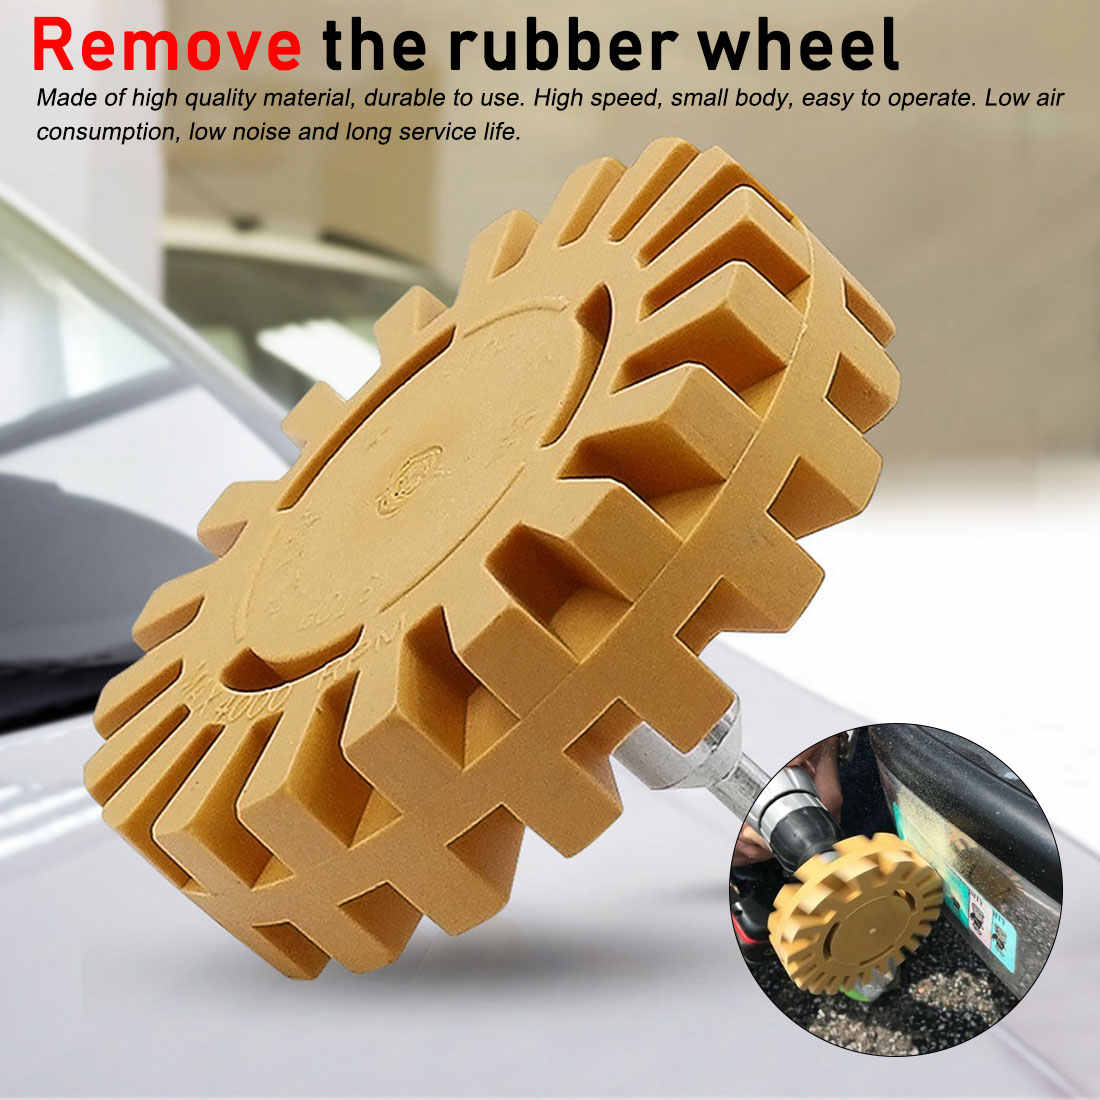 "Polishing Wheel Decal Remover 1/4"" Shank Rubber Eraser Wheel Quick Polishing Removal Tool For Car Stickers And Decals"